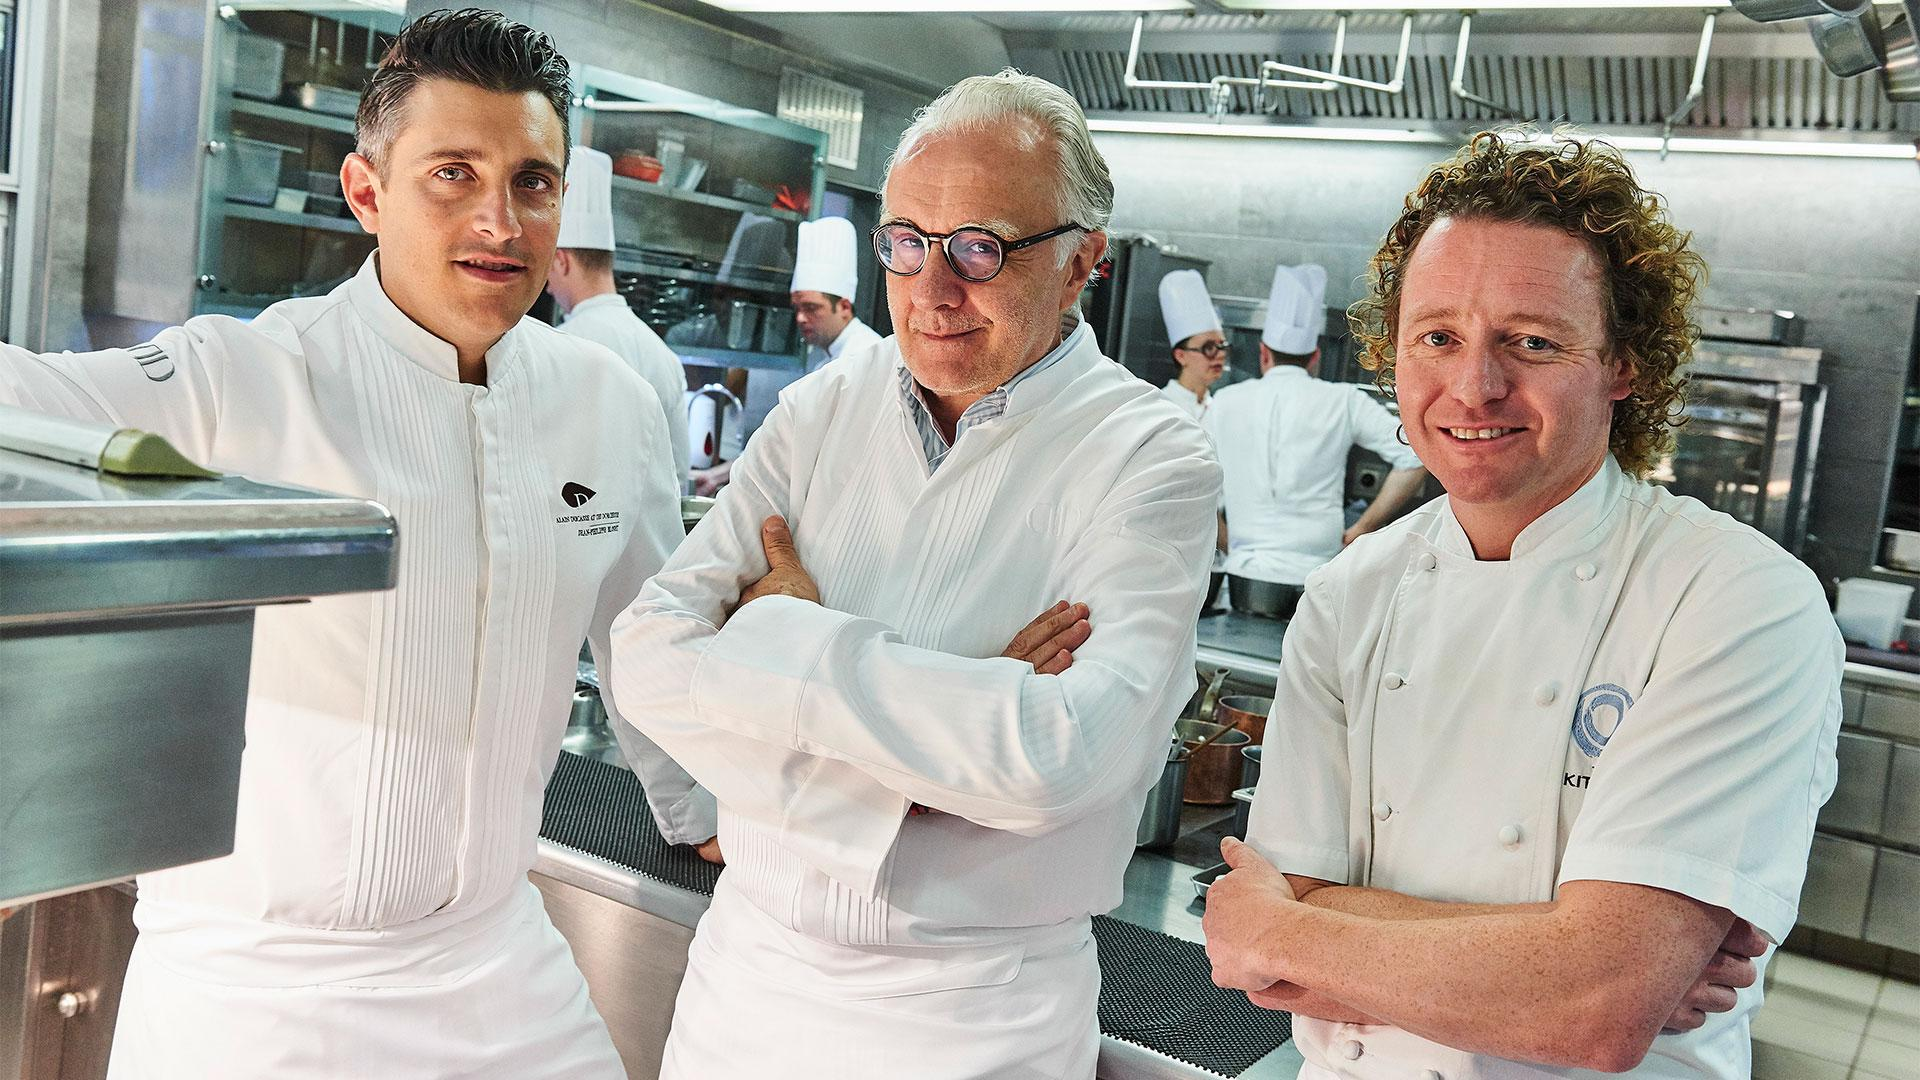 Alain Ducasse in the kitchen at The Dorchester with executive chef Jean-Philippe Blondet and Tom Kitchin